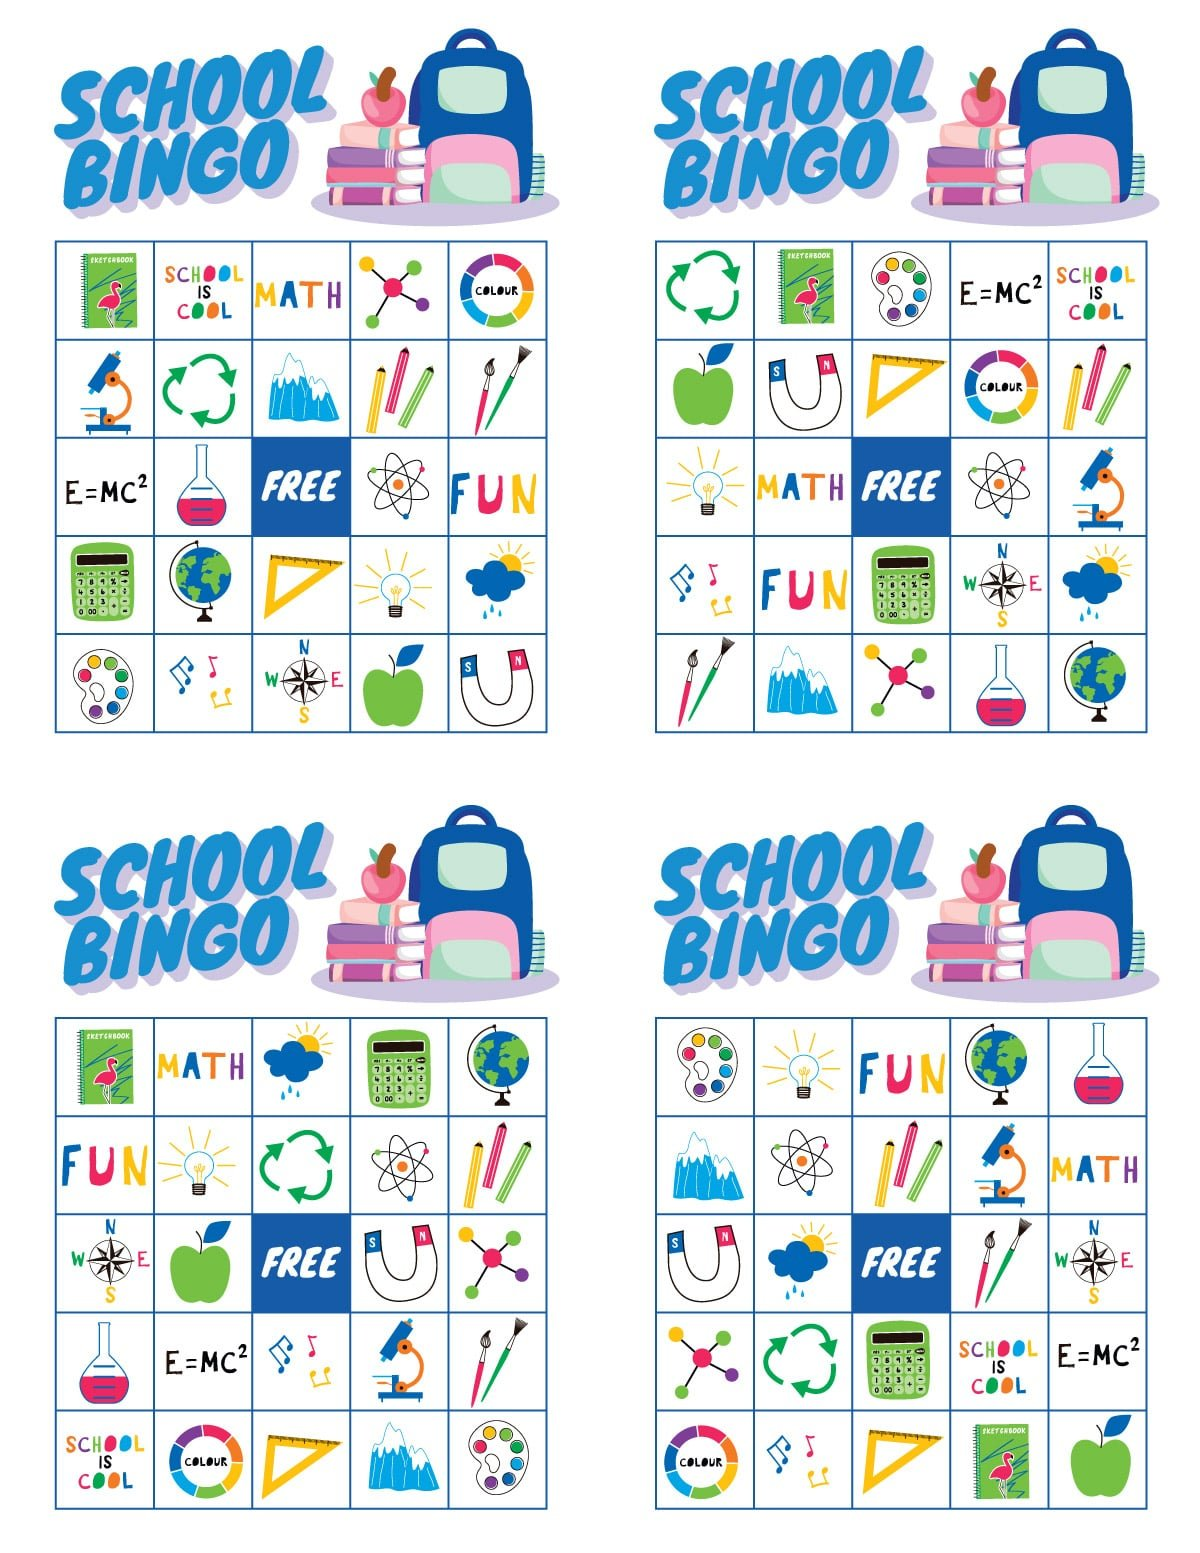 Four white school bingo cards with school images on them